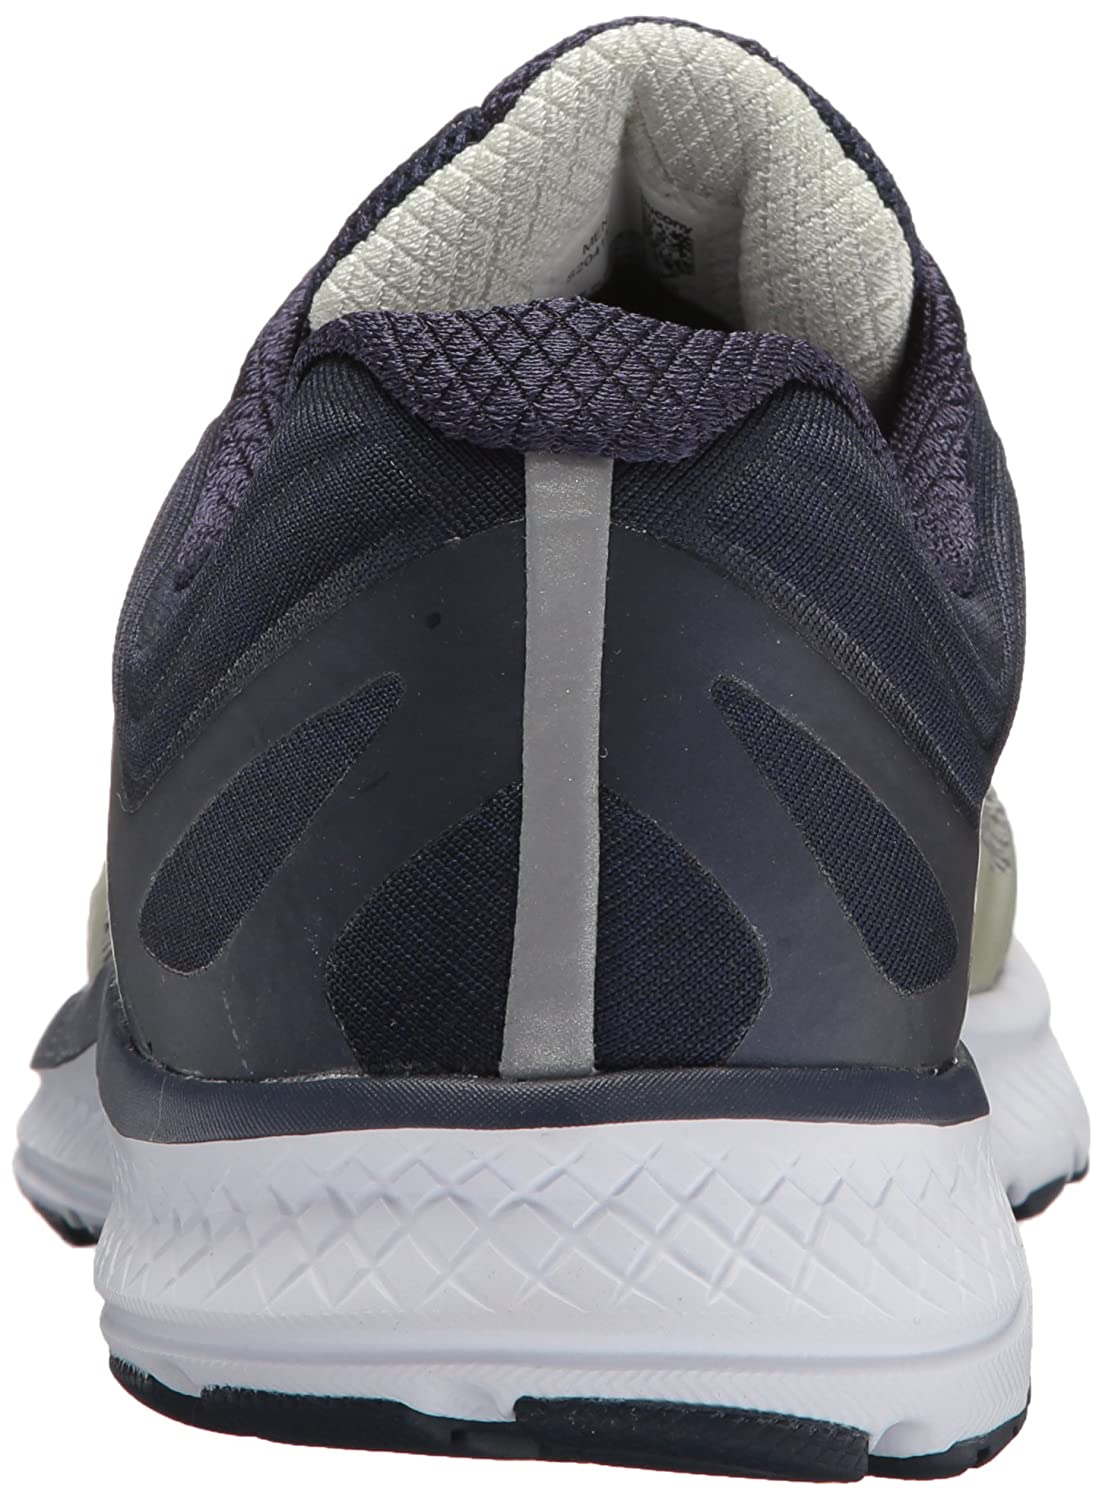 S20416-1 Saucony Guide ISO Wide